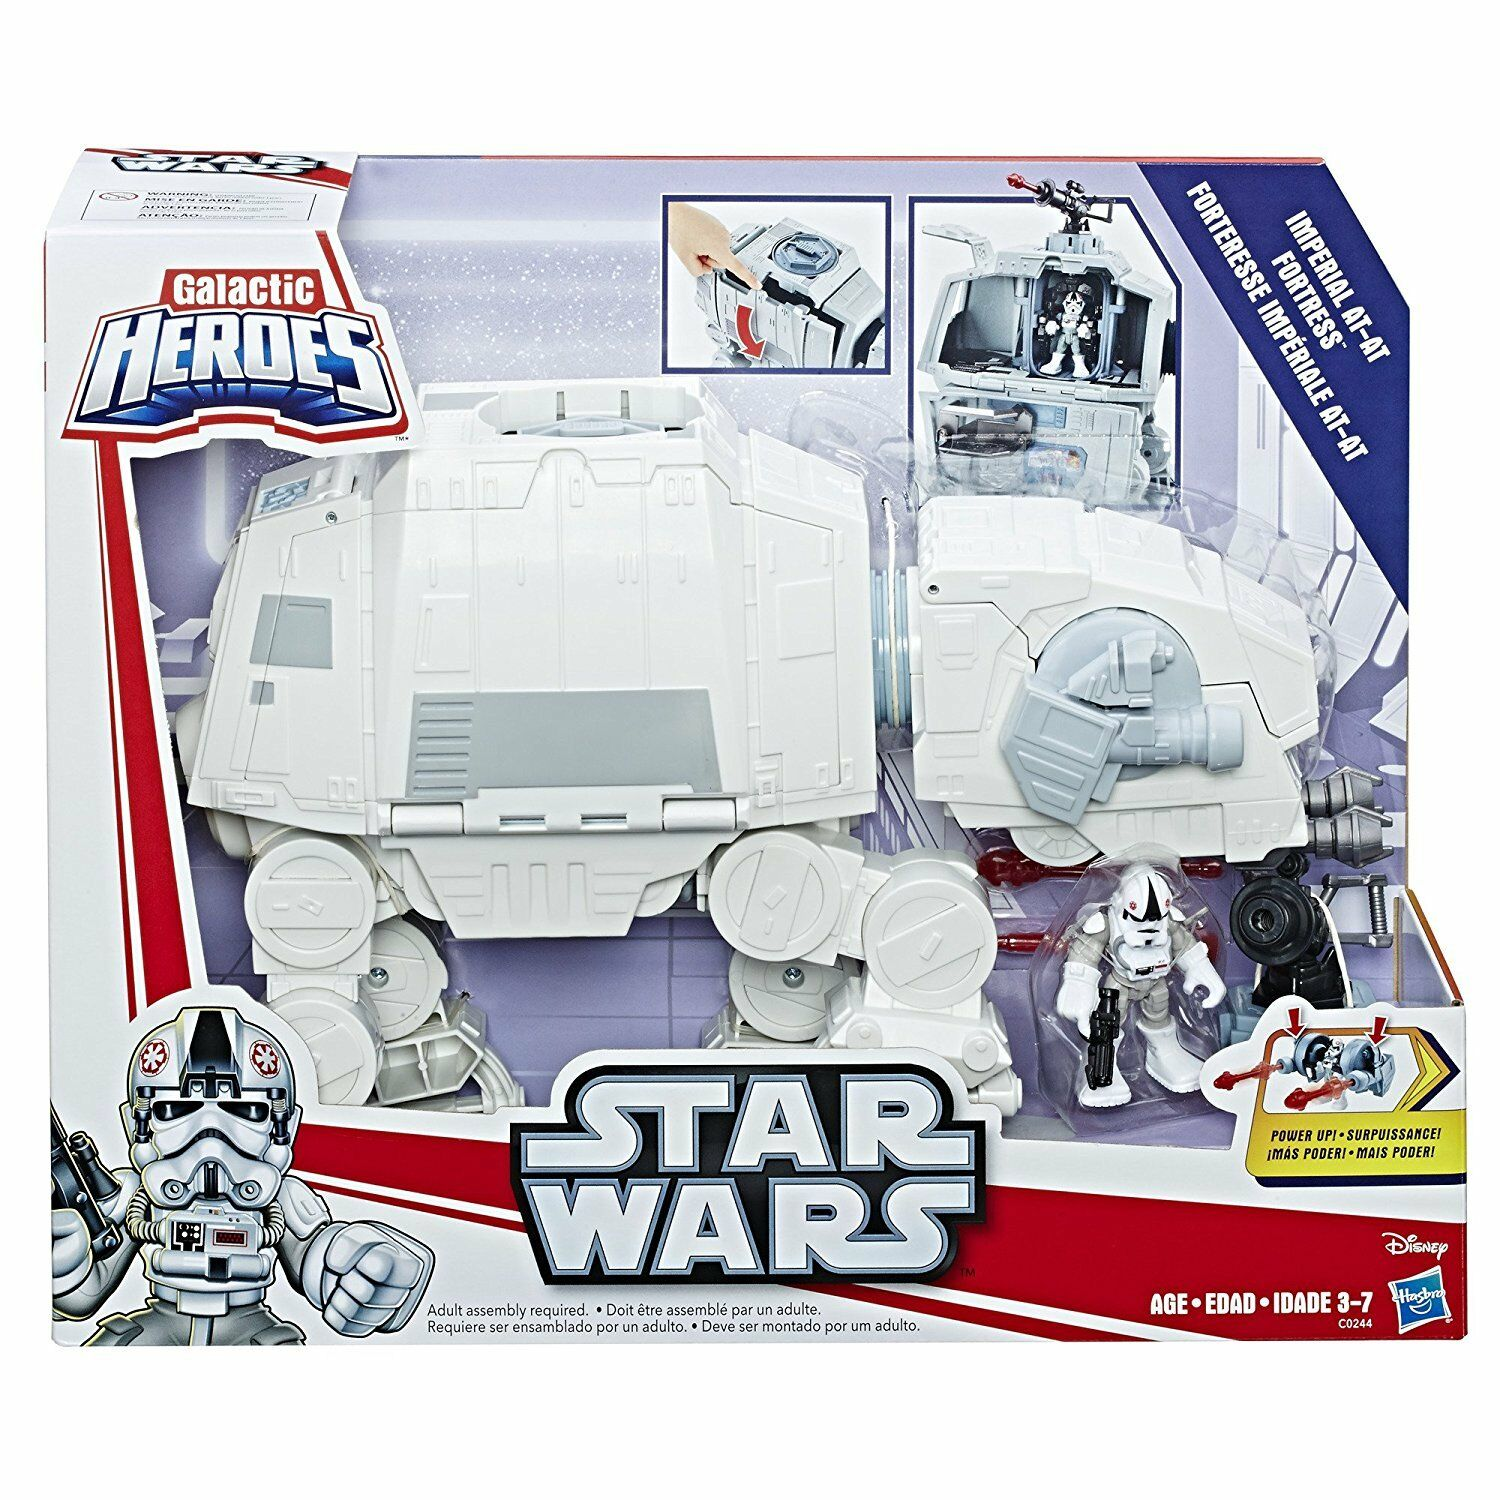 Playskool Star Wars Galactic Heroes Last Jedi Imperial AT-AT Fortress Hoth Snow